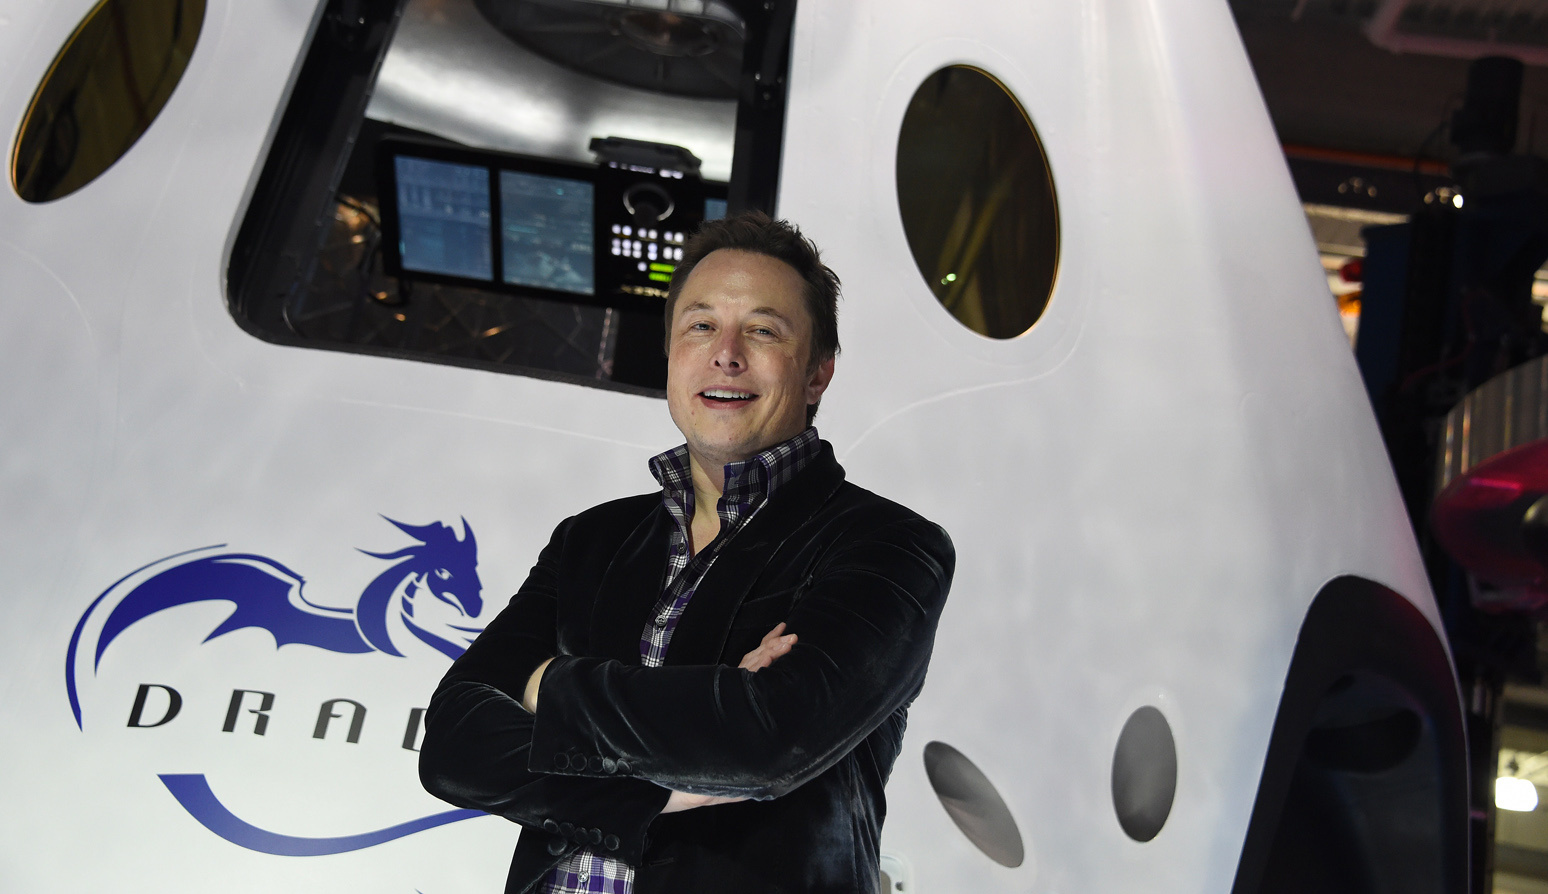 SpaceX CEO Elon Musk introduces SpaceX's Dragon V2 spacecraft, the company's next generation version of the Dragon ship designed  to carry astronauts into space, at a press conference in Hawthorne, Calif. on May 29, 2014.